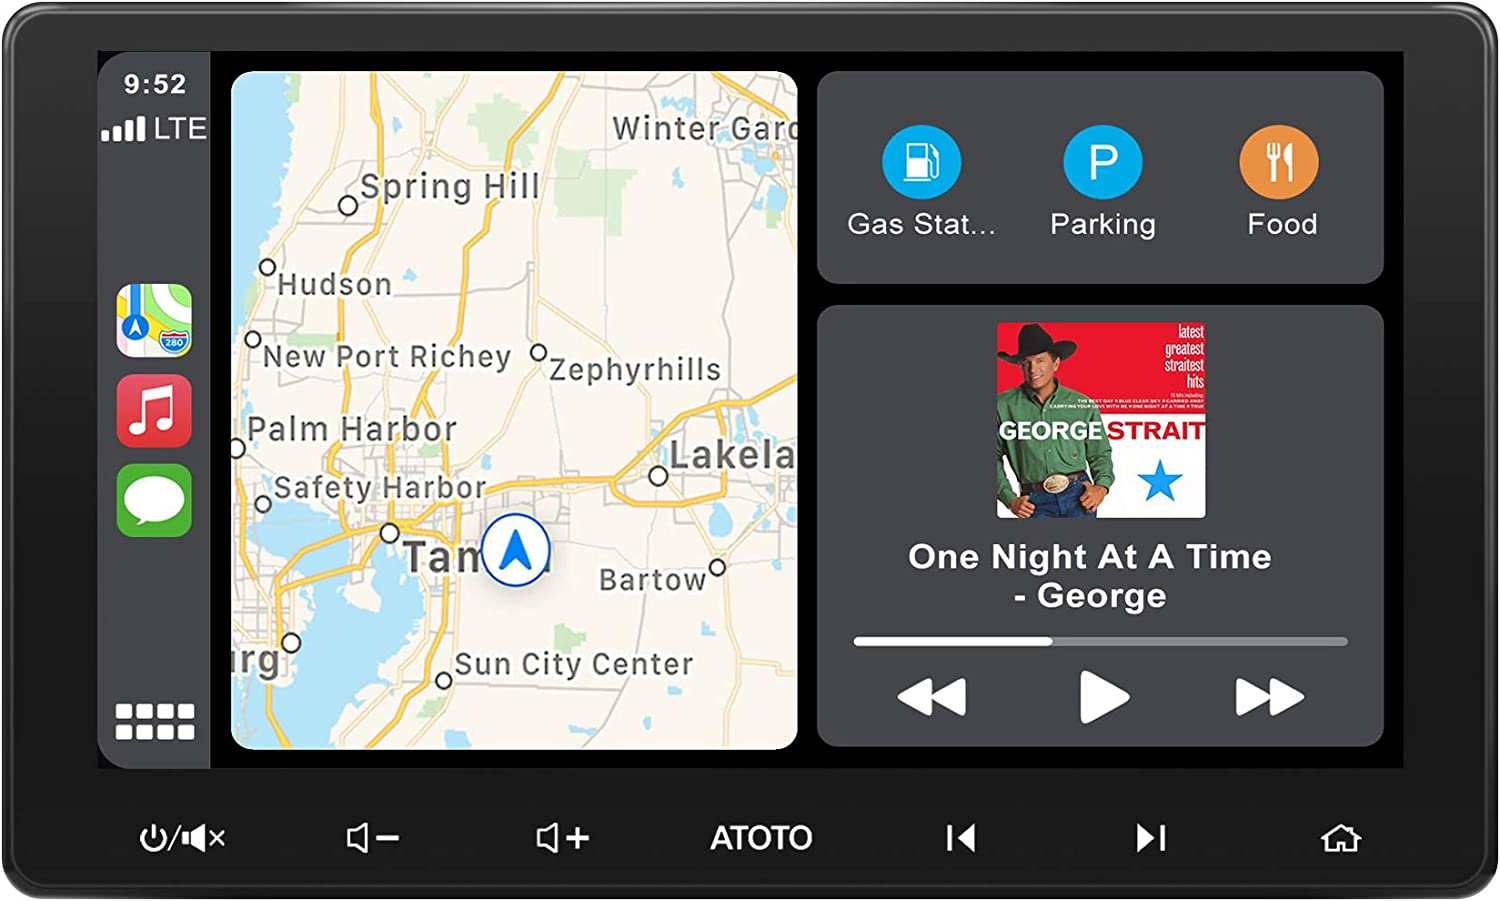 F7G211SE 10in IAH10D AutoLink Phone Mirroring ATOTO F7 SE Car in-Dash Navigation HD Rearview Input Up to 2TB USB//SD Bluetooth Handsfree//A2DP Android Auto /& CarPlay Connection Quick Charge